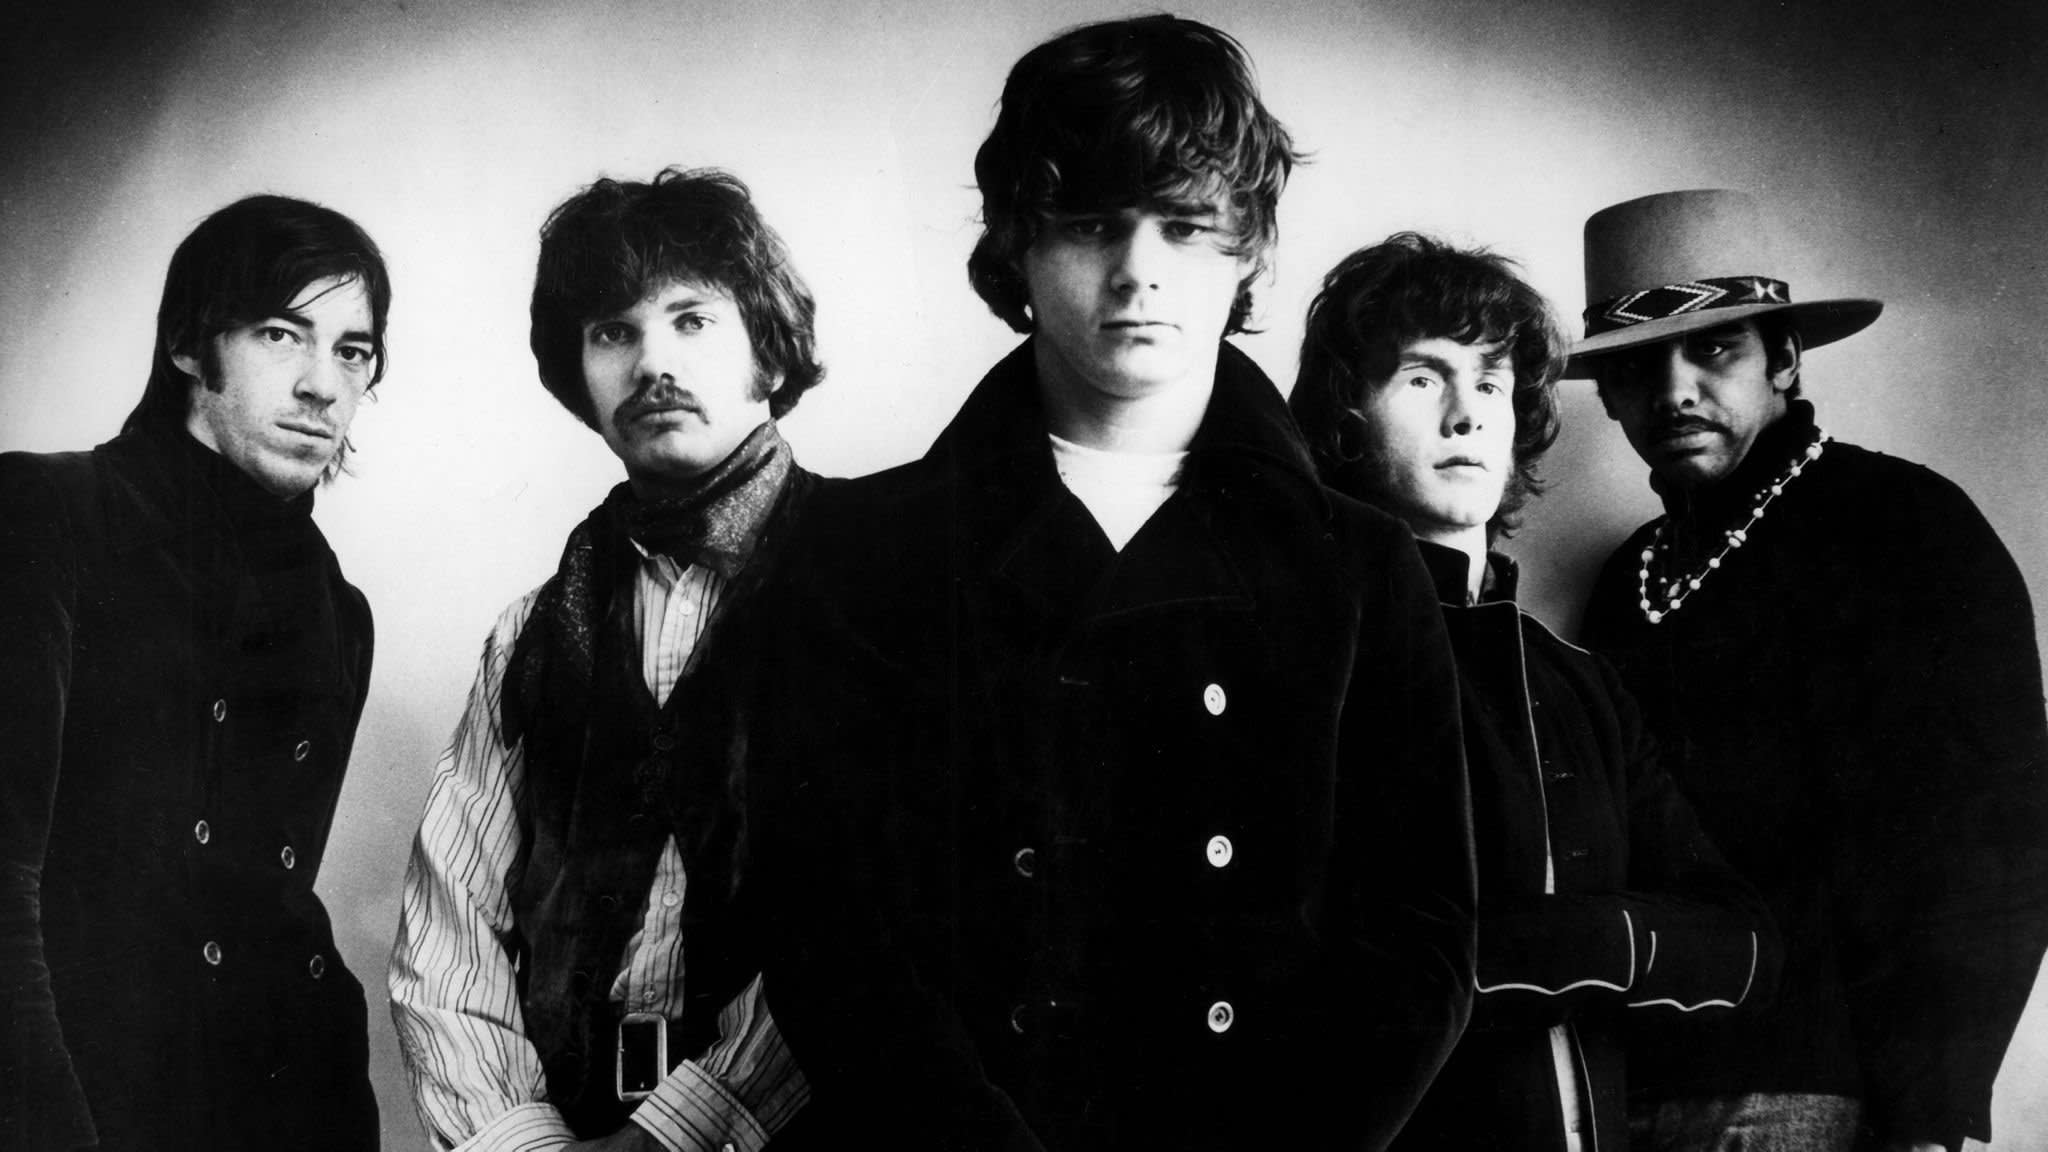 Fly Like An Eagle The Steve Miller Band S Hit Tapped Into A Yearning For Freedom Ft Com